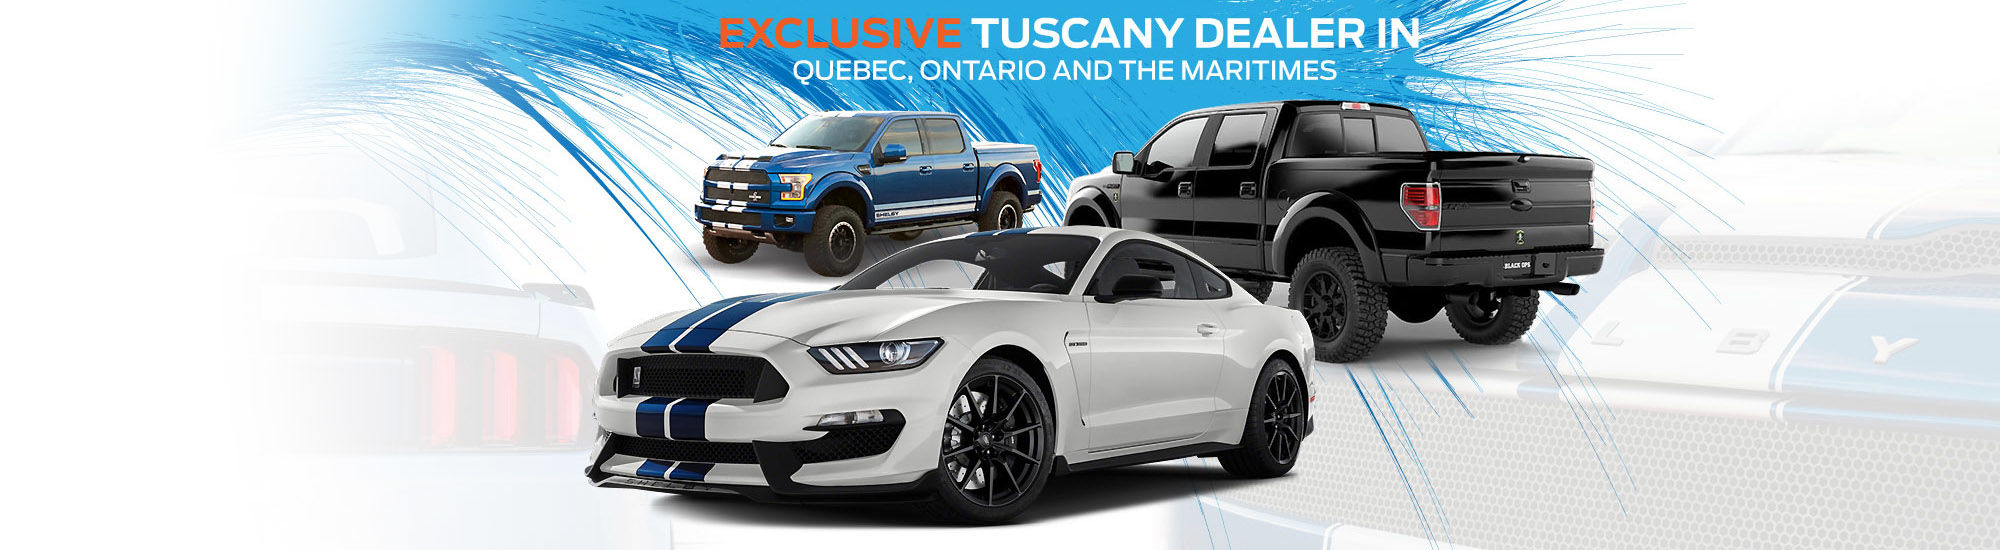 Exclusive Tuscany dealer